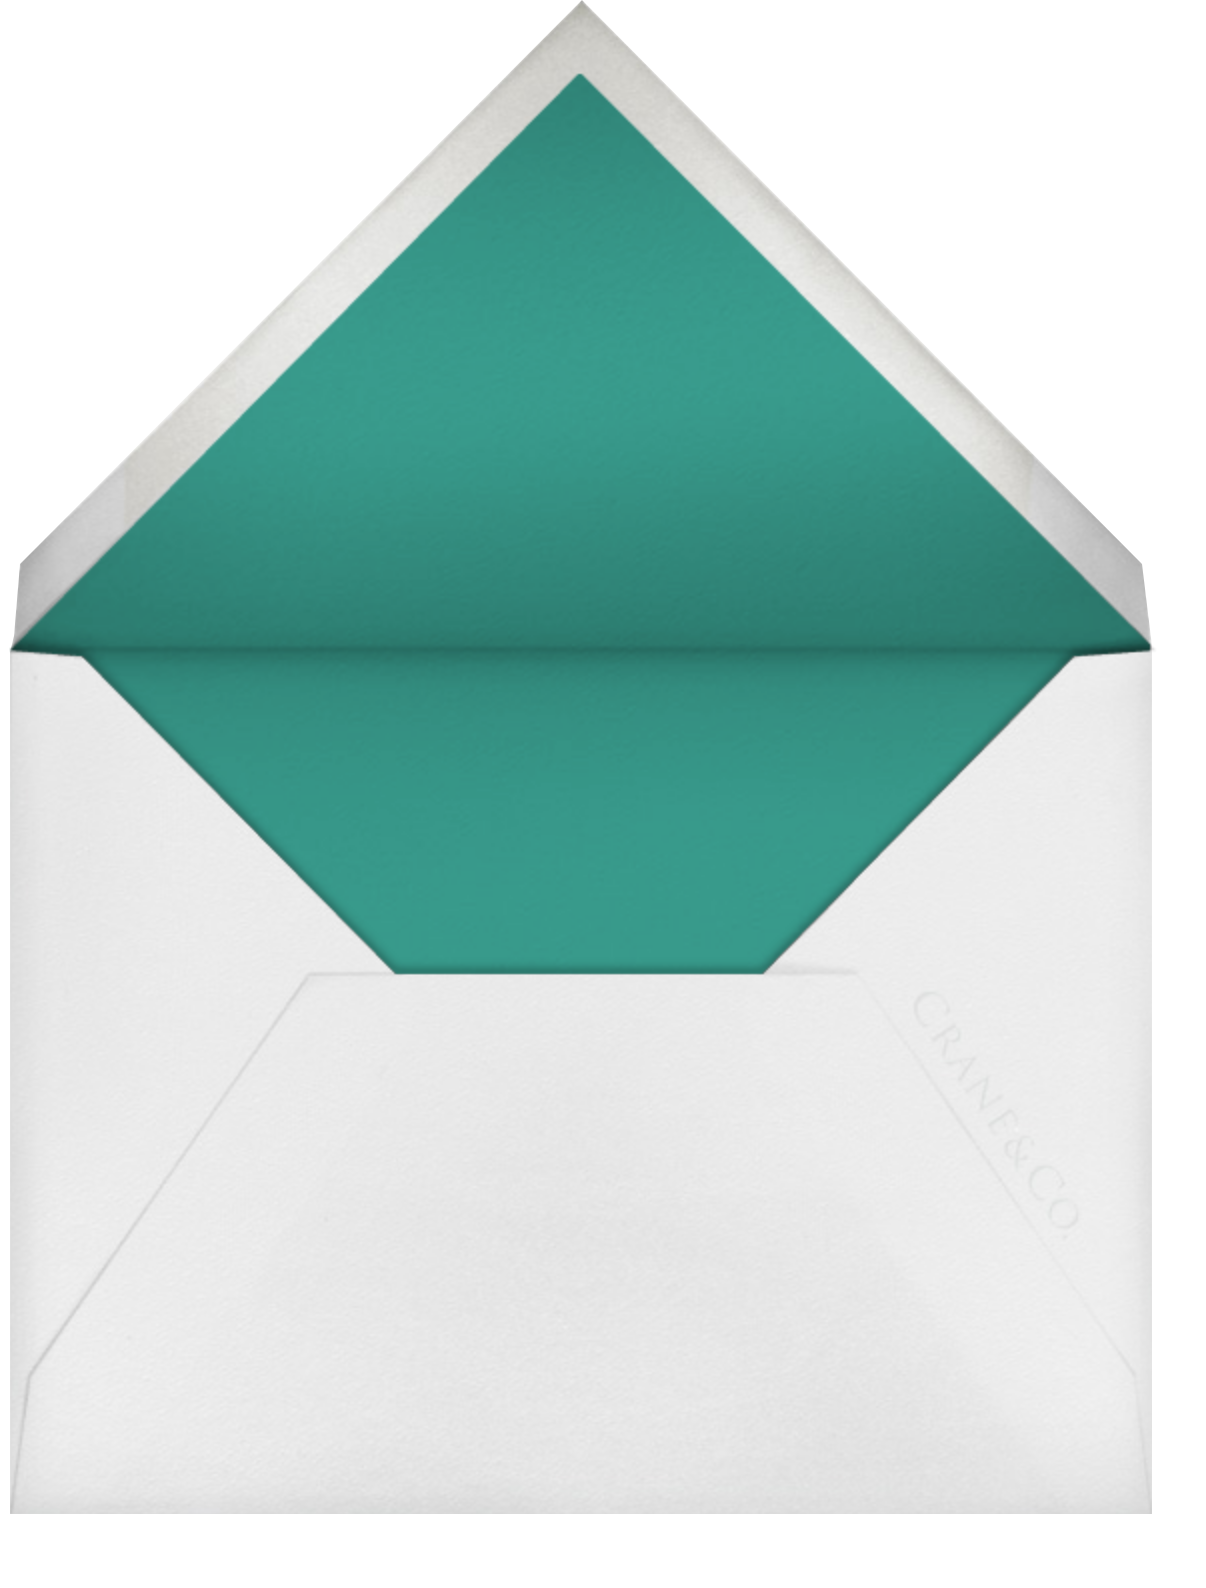 Picot I (Save The Date) - Paperless Post - null - envelope back